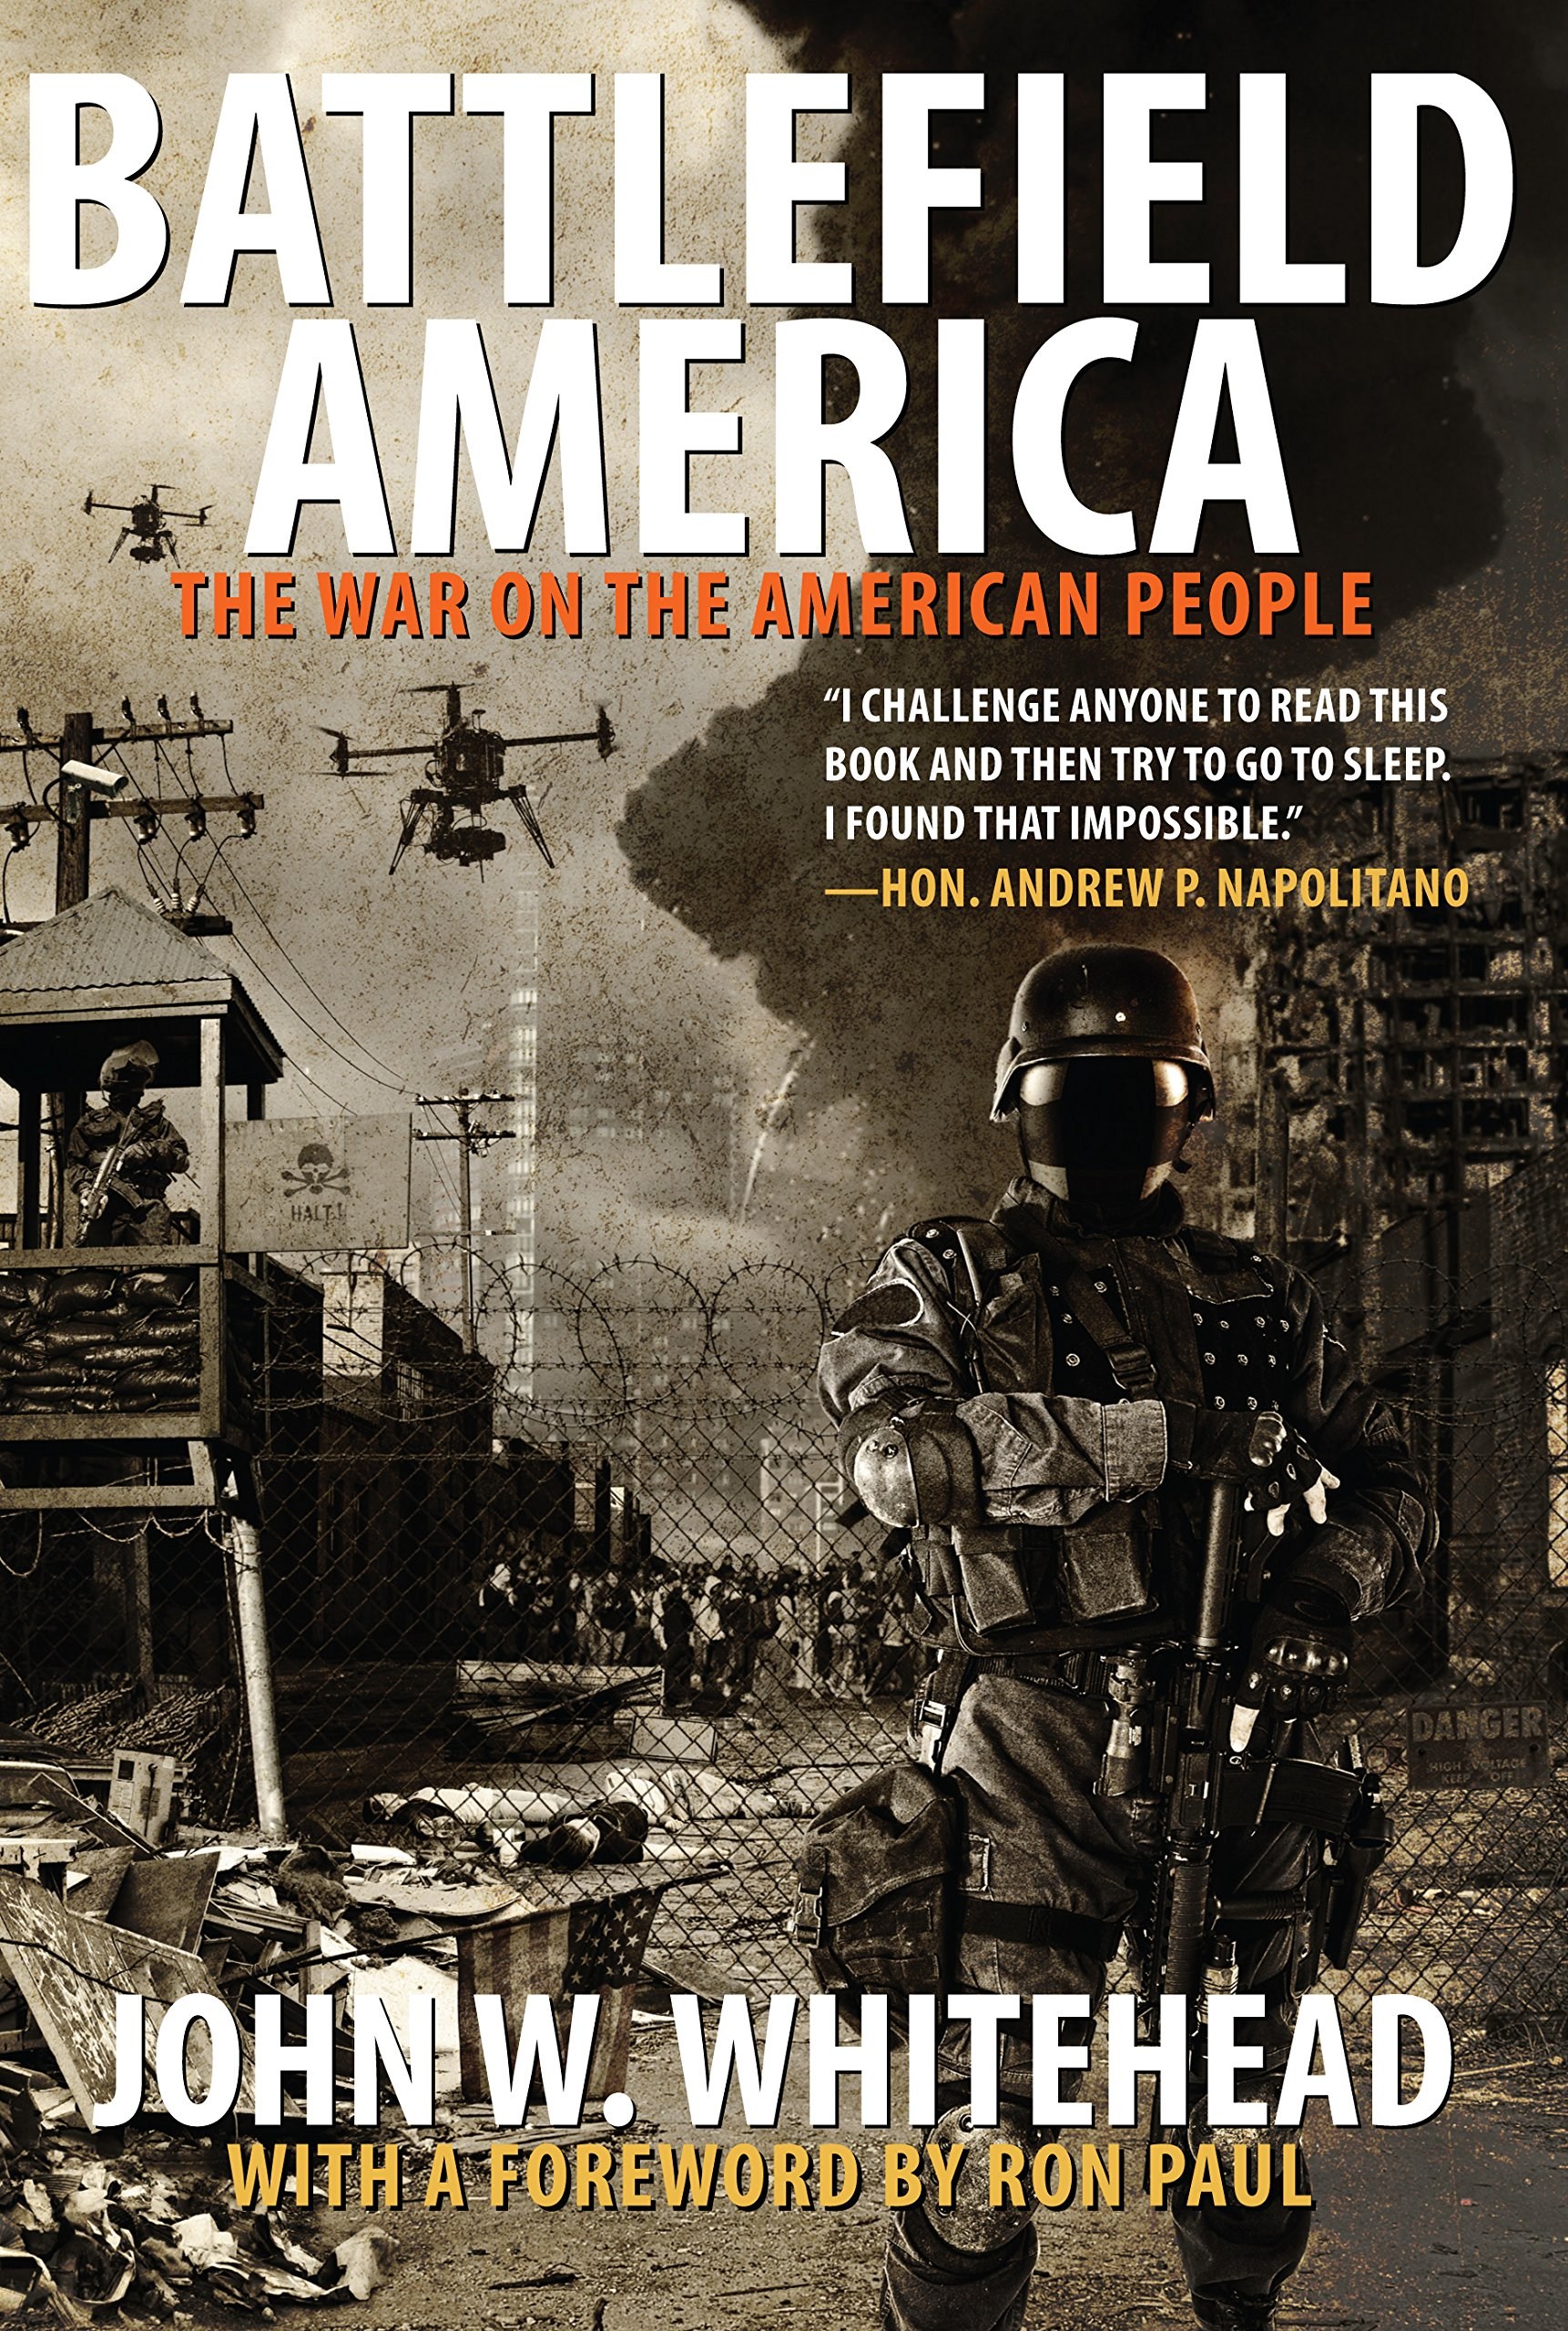 Amazon Battlefield America The War On American People 9781590793091 John W Whitehead Books